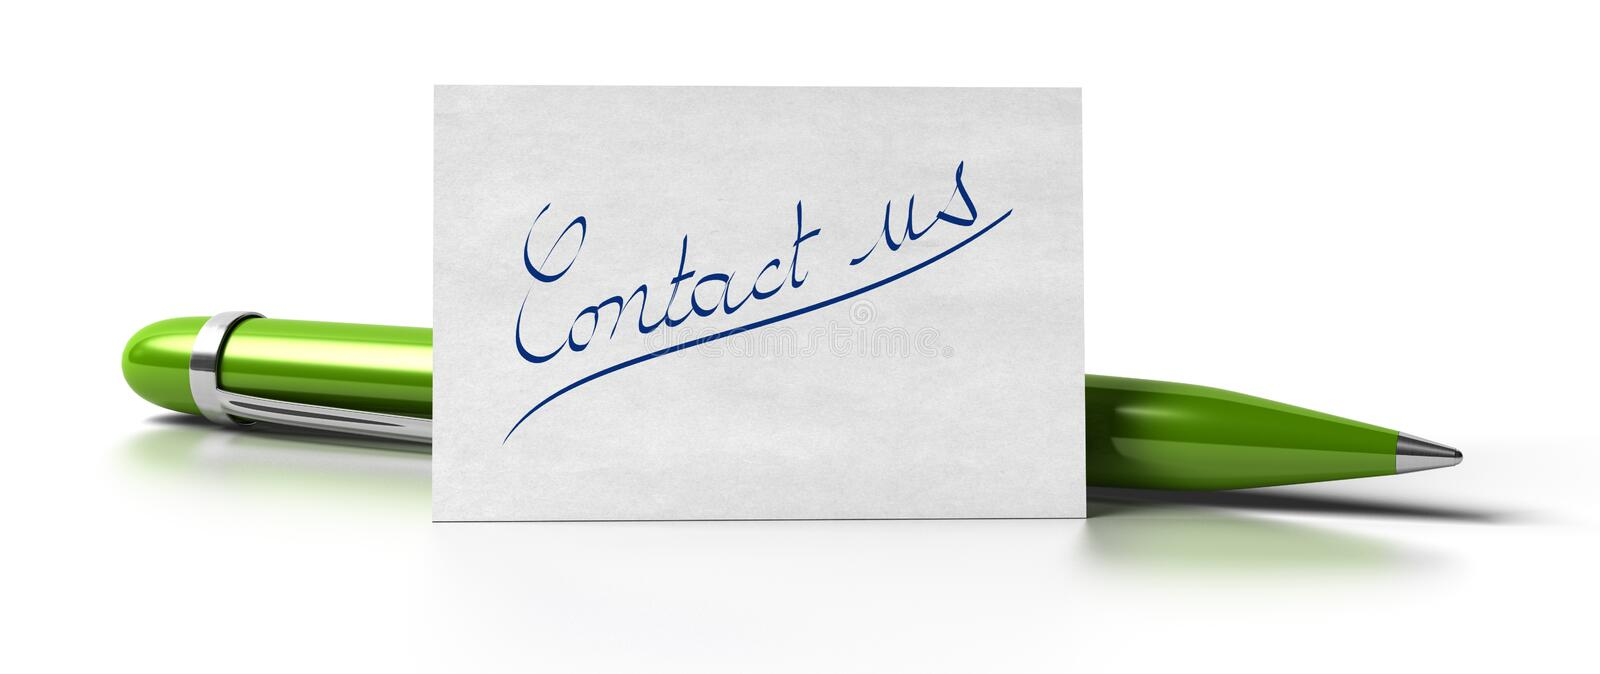 Contact us green pen vector illustration